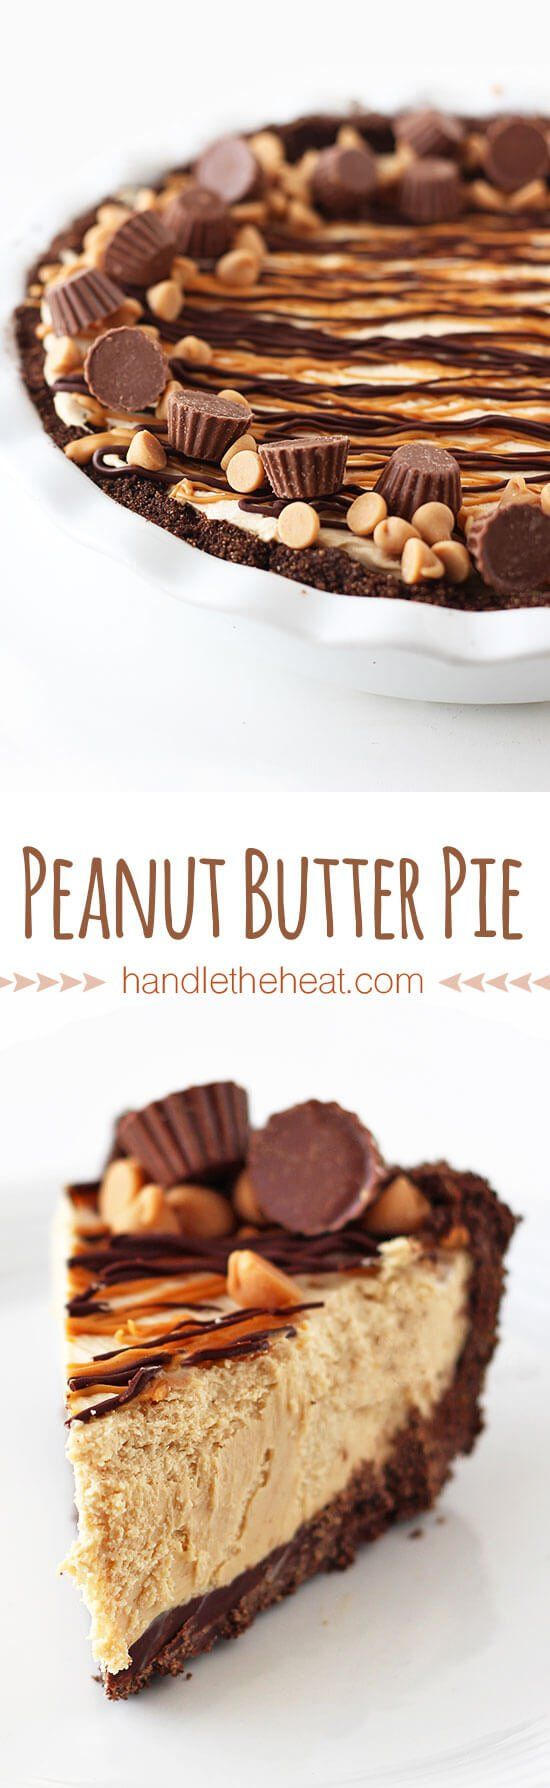 He said this was the BEST pie he ever had! Everyone wanted seconds! Love this peanut butter pie recipe. | Handle the Heat